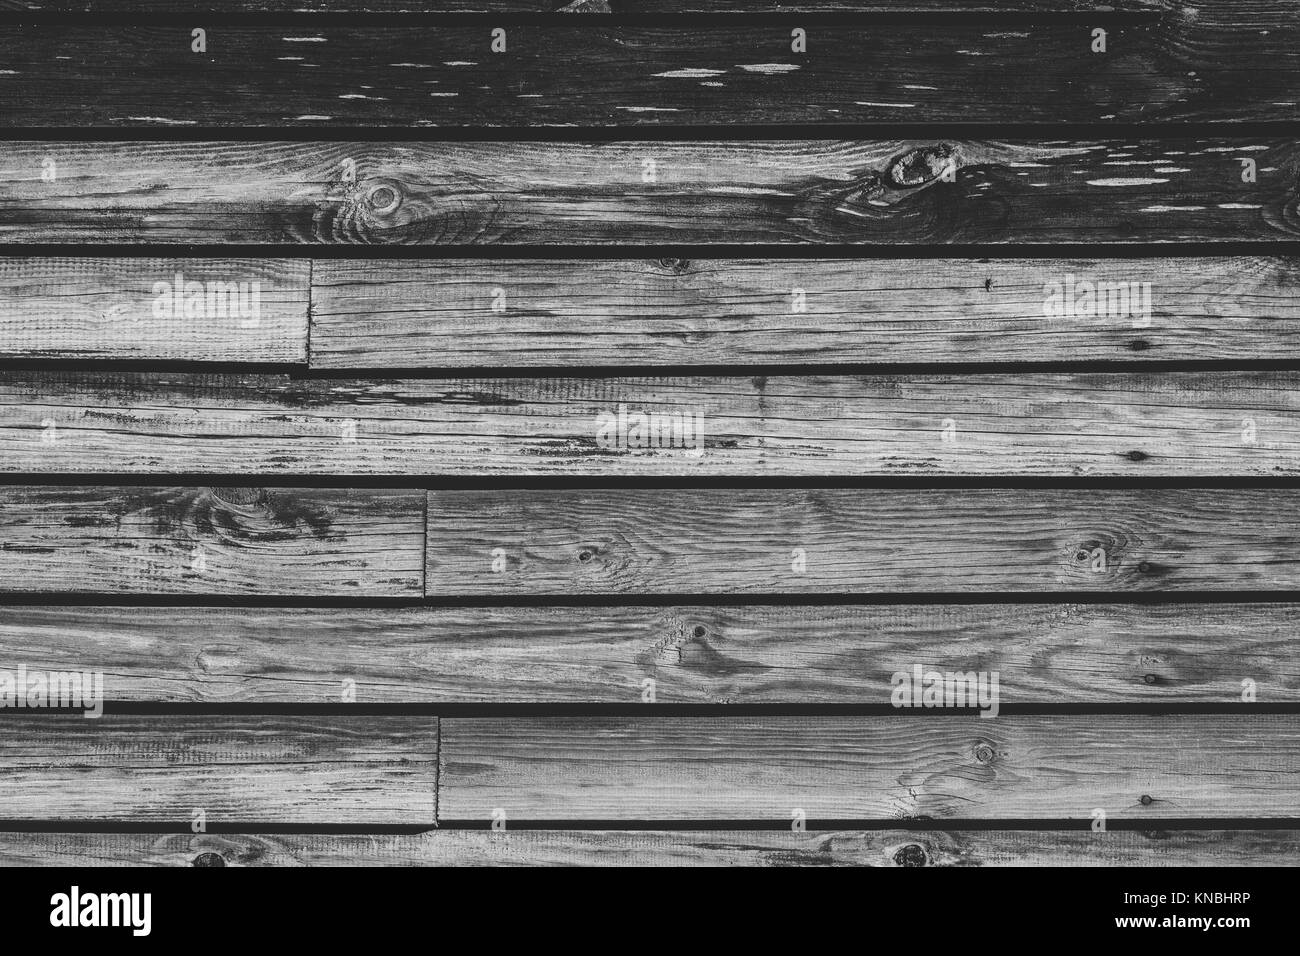 horizontal wood background. The Wood Background From Old Horizontal Boards. Black And White Photography.